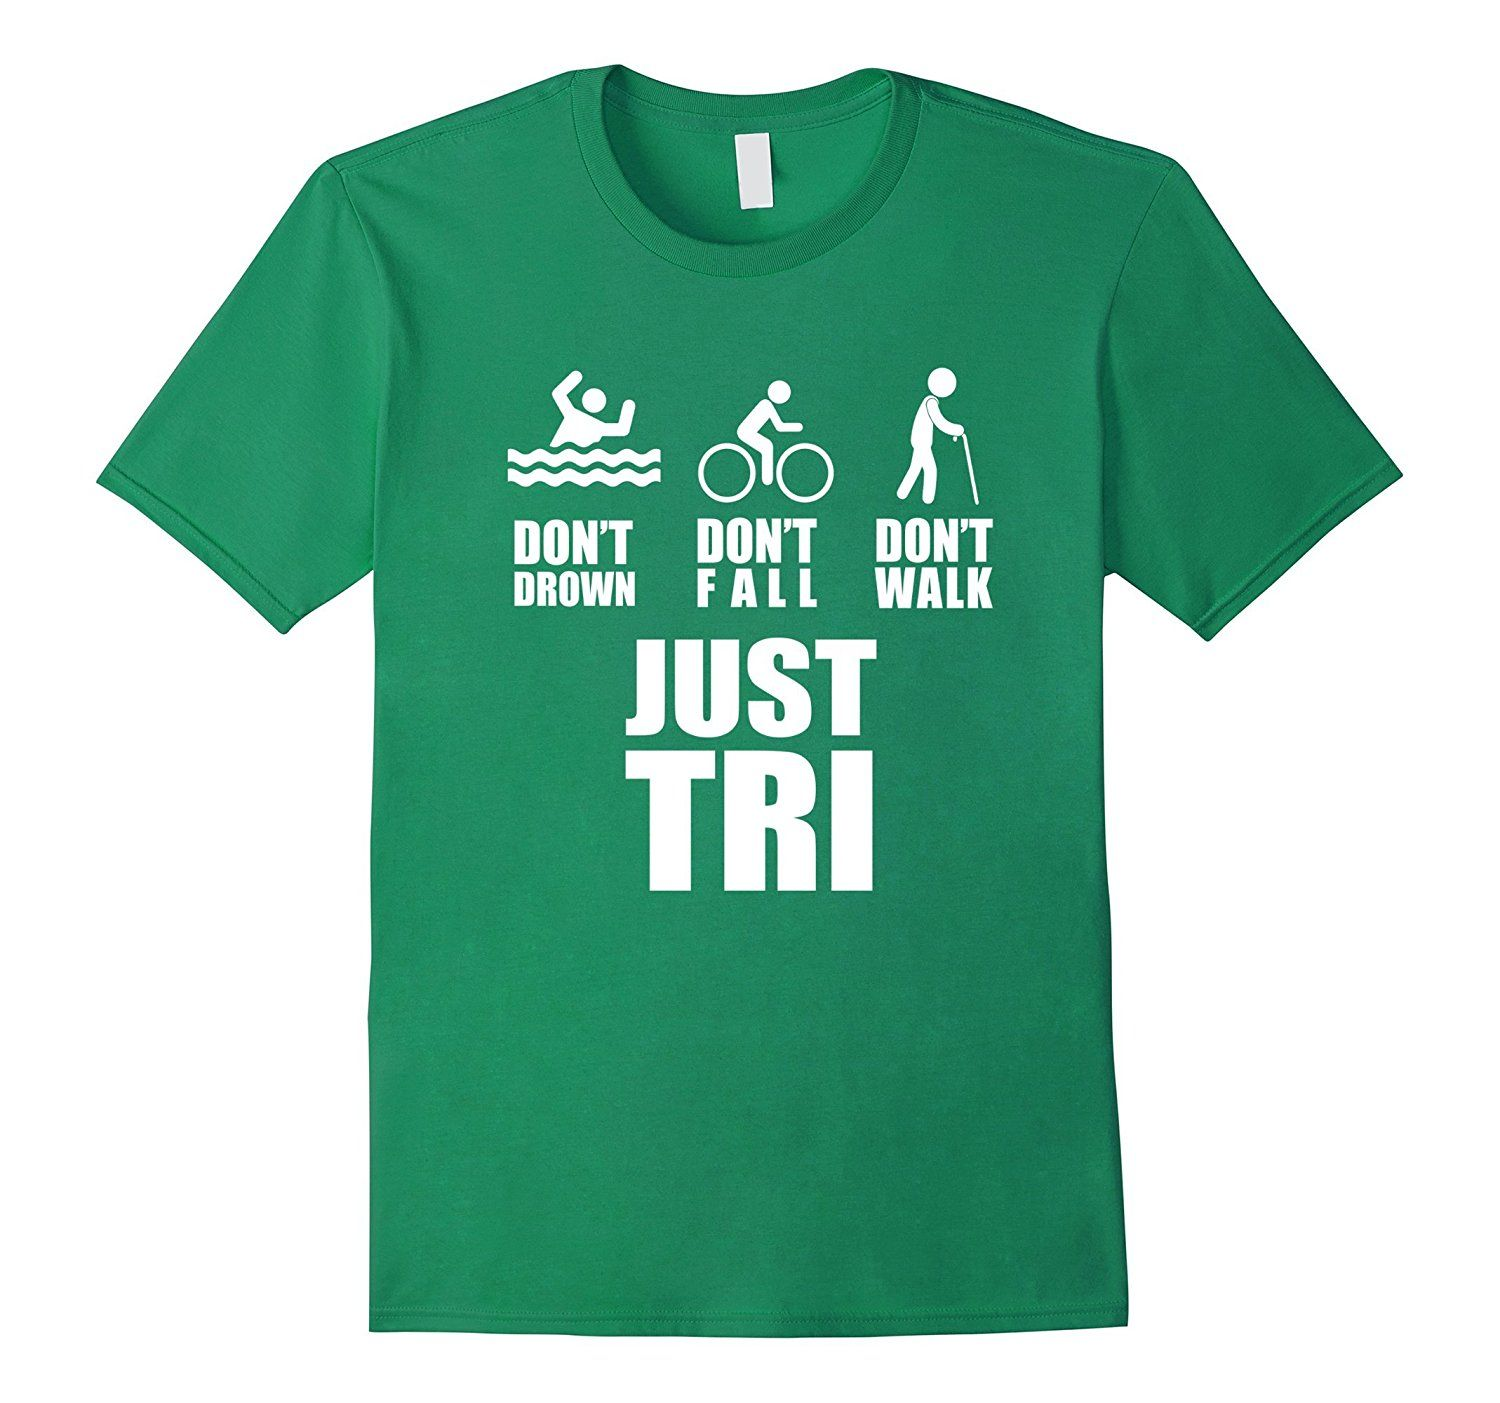 A Great Funny Motivational Triathlon Quotes Shirt For Triathletes To Enjoy When Performing The Vigorous Triathlon Sport Trai Triathlon Shirts Triathlon T Shirt